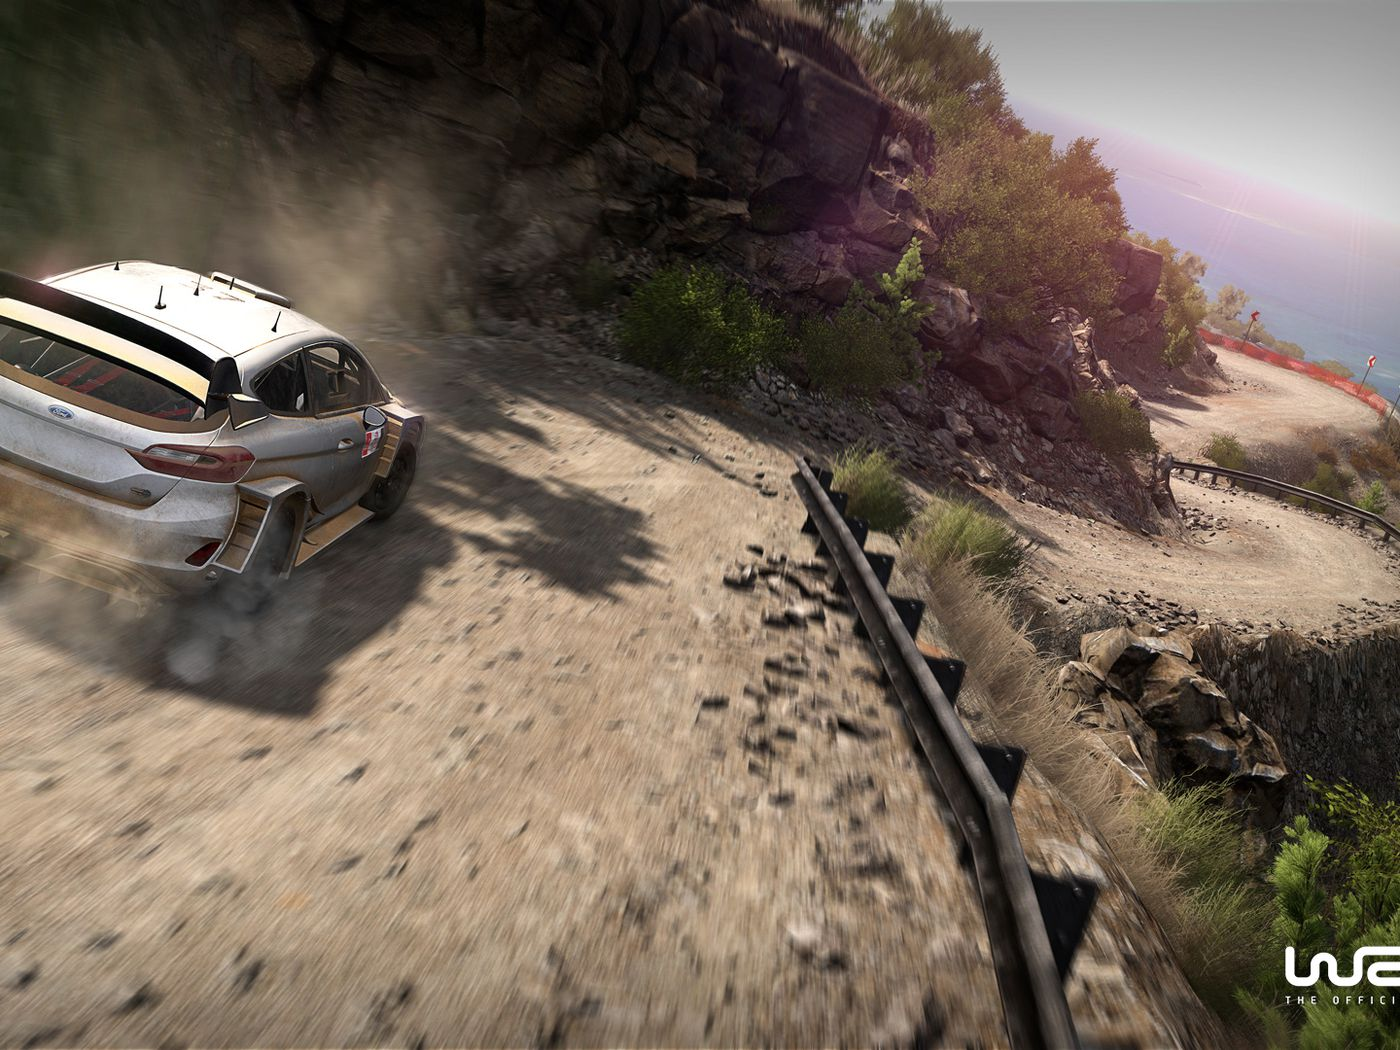 WRC's official rally racing game returns after skipping 2018